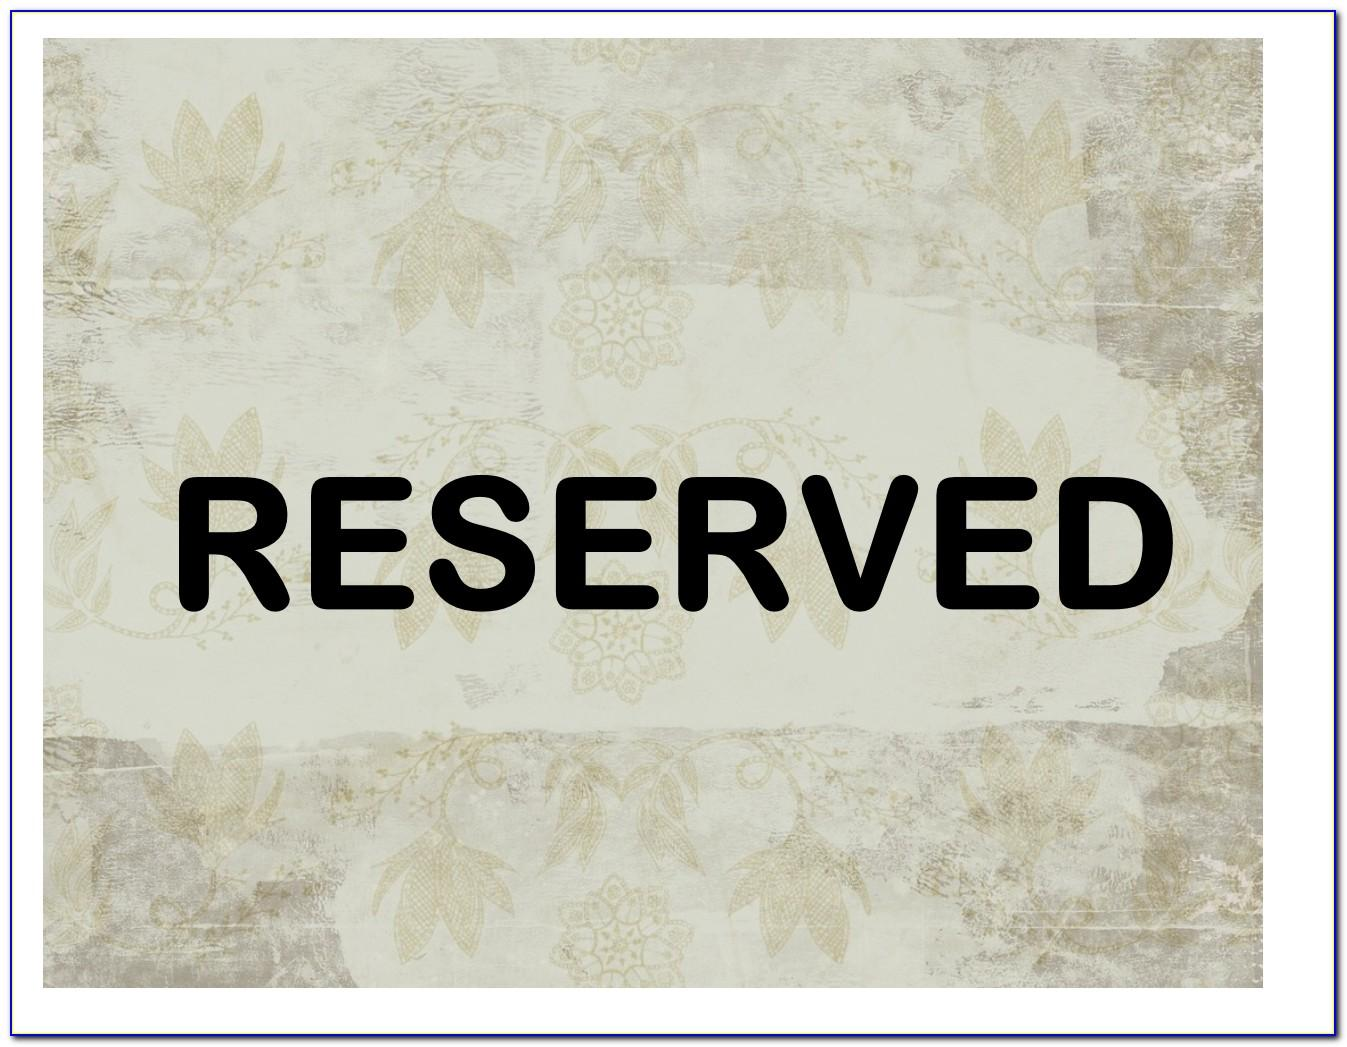 Reserved Parking Sign Template Word